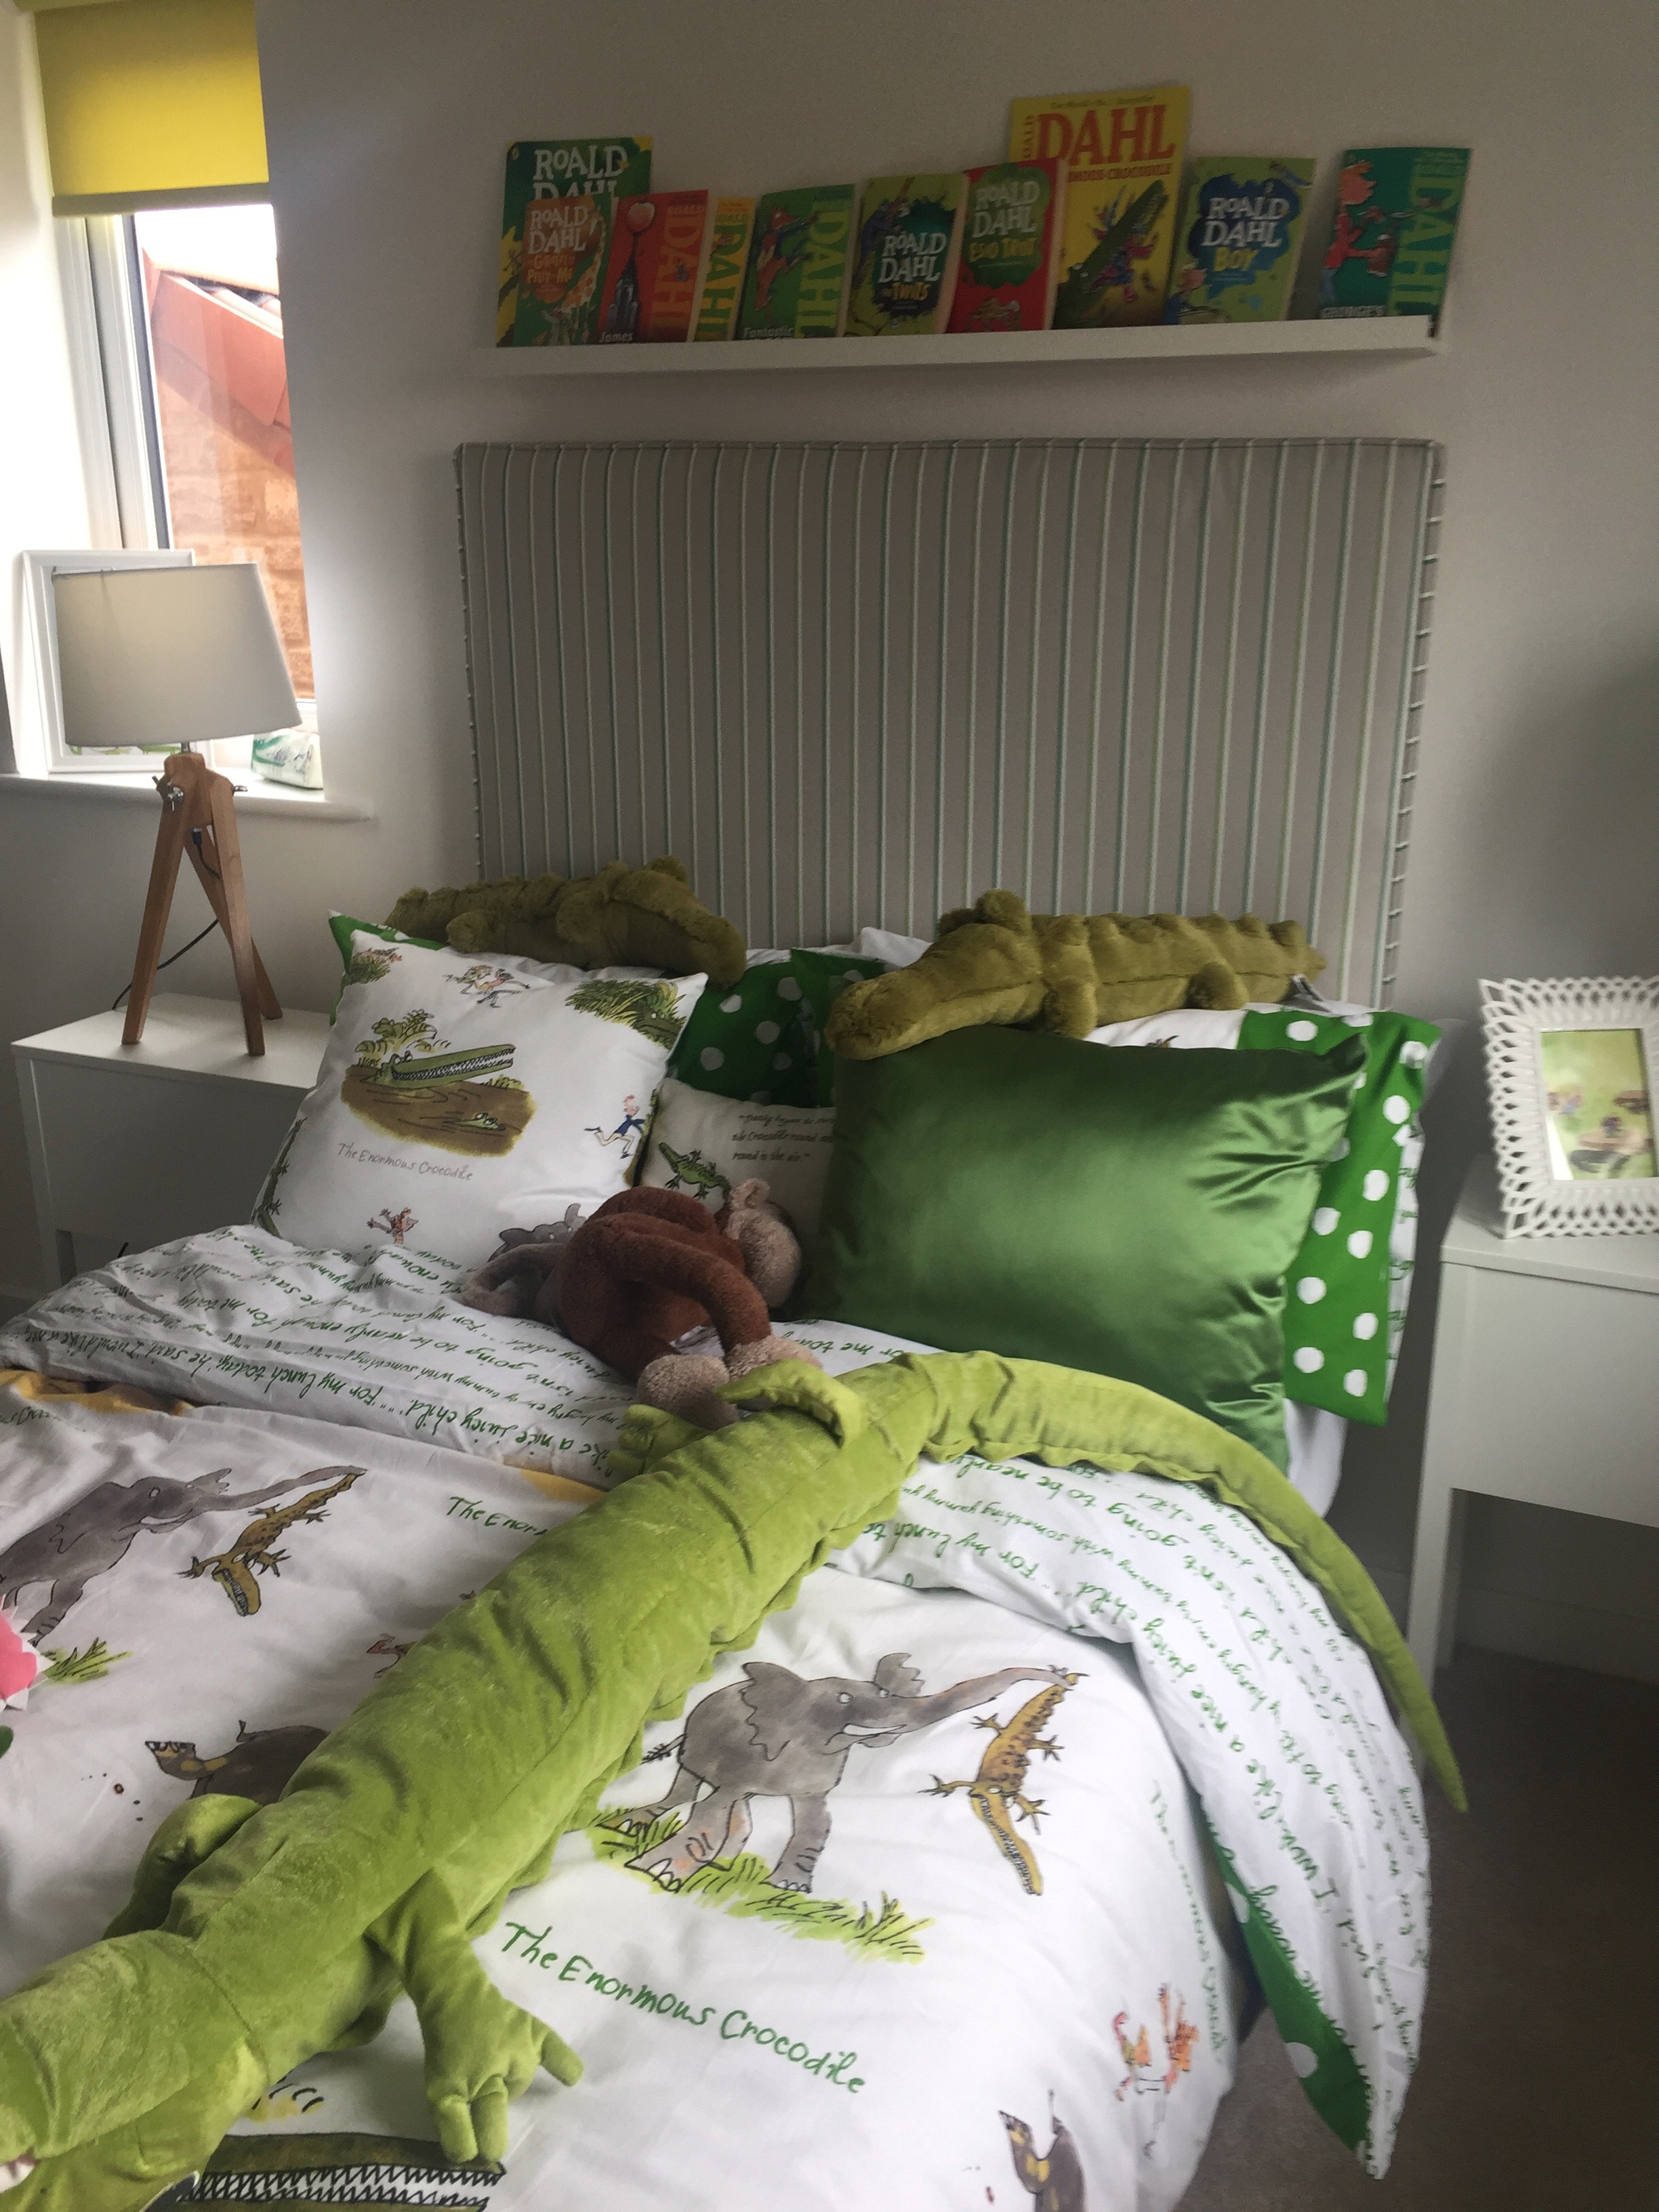 A Roald Dahl themed bedroom. Perfect for a child's room, but that's where it should stay!